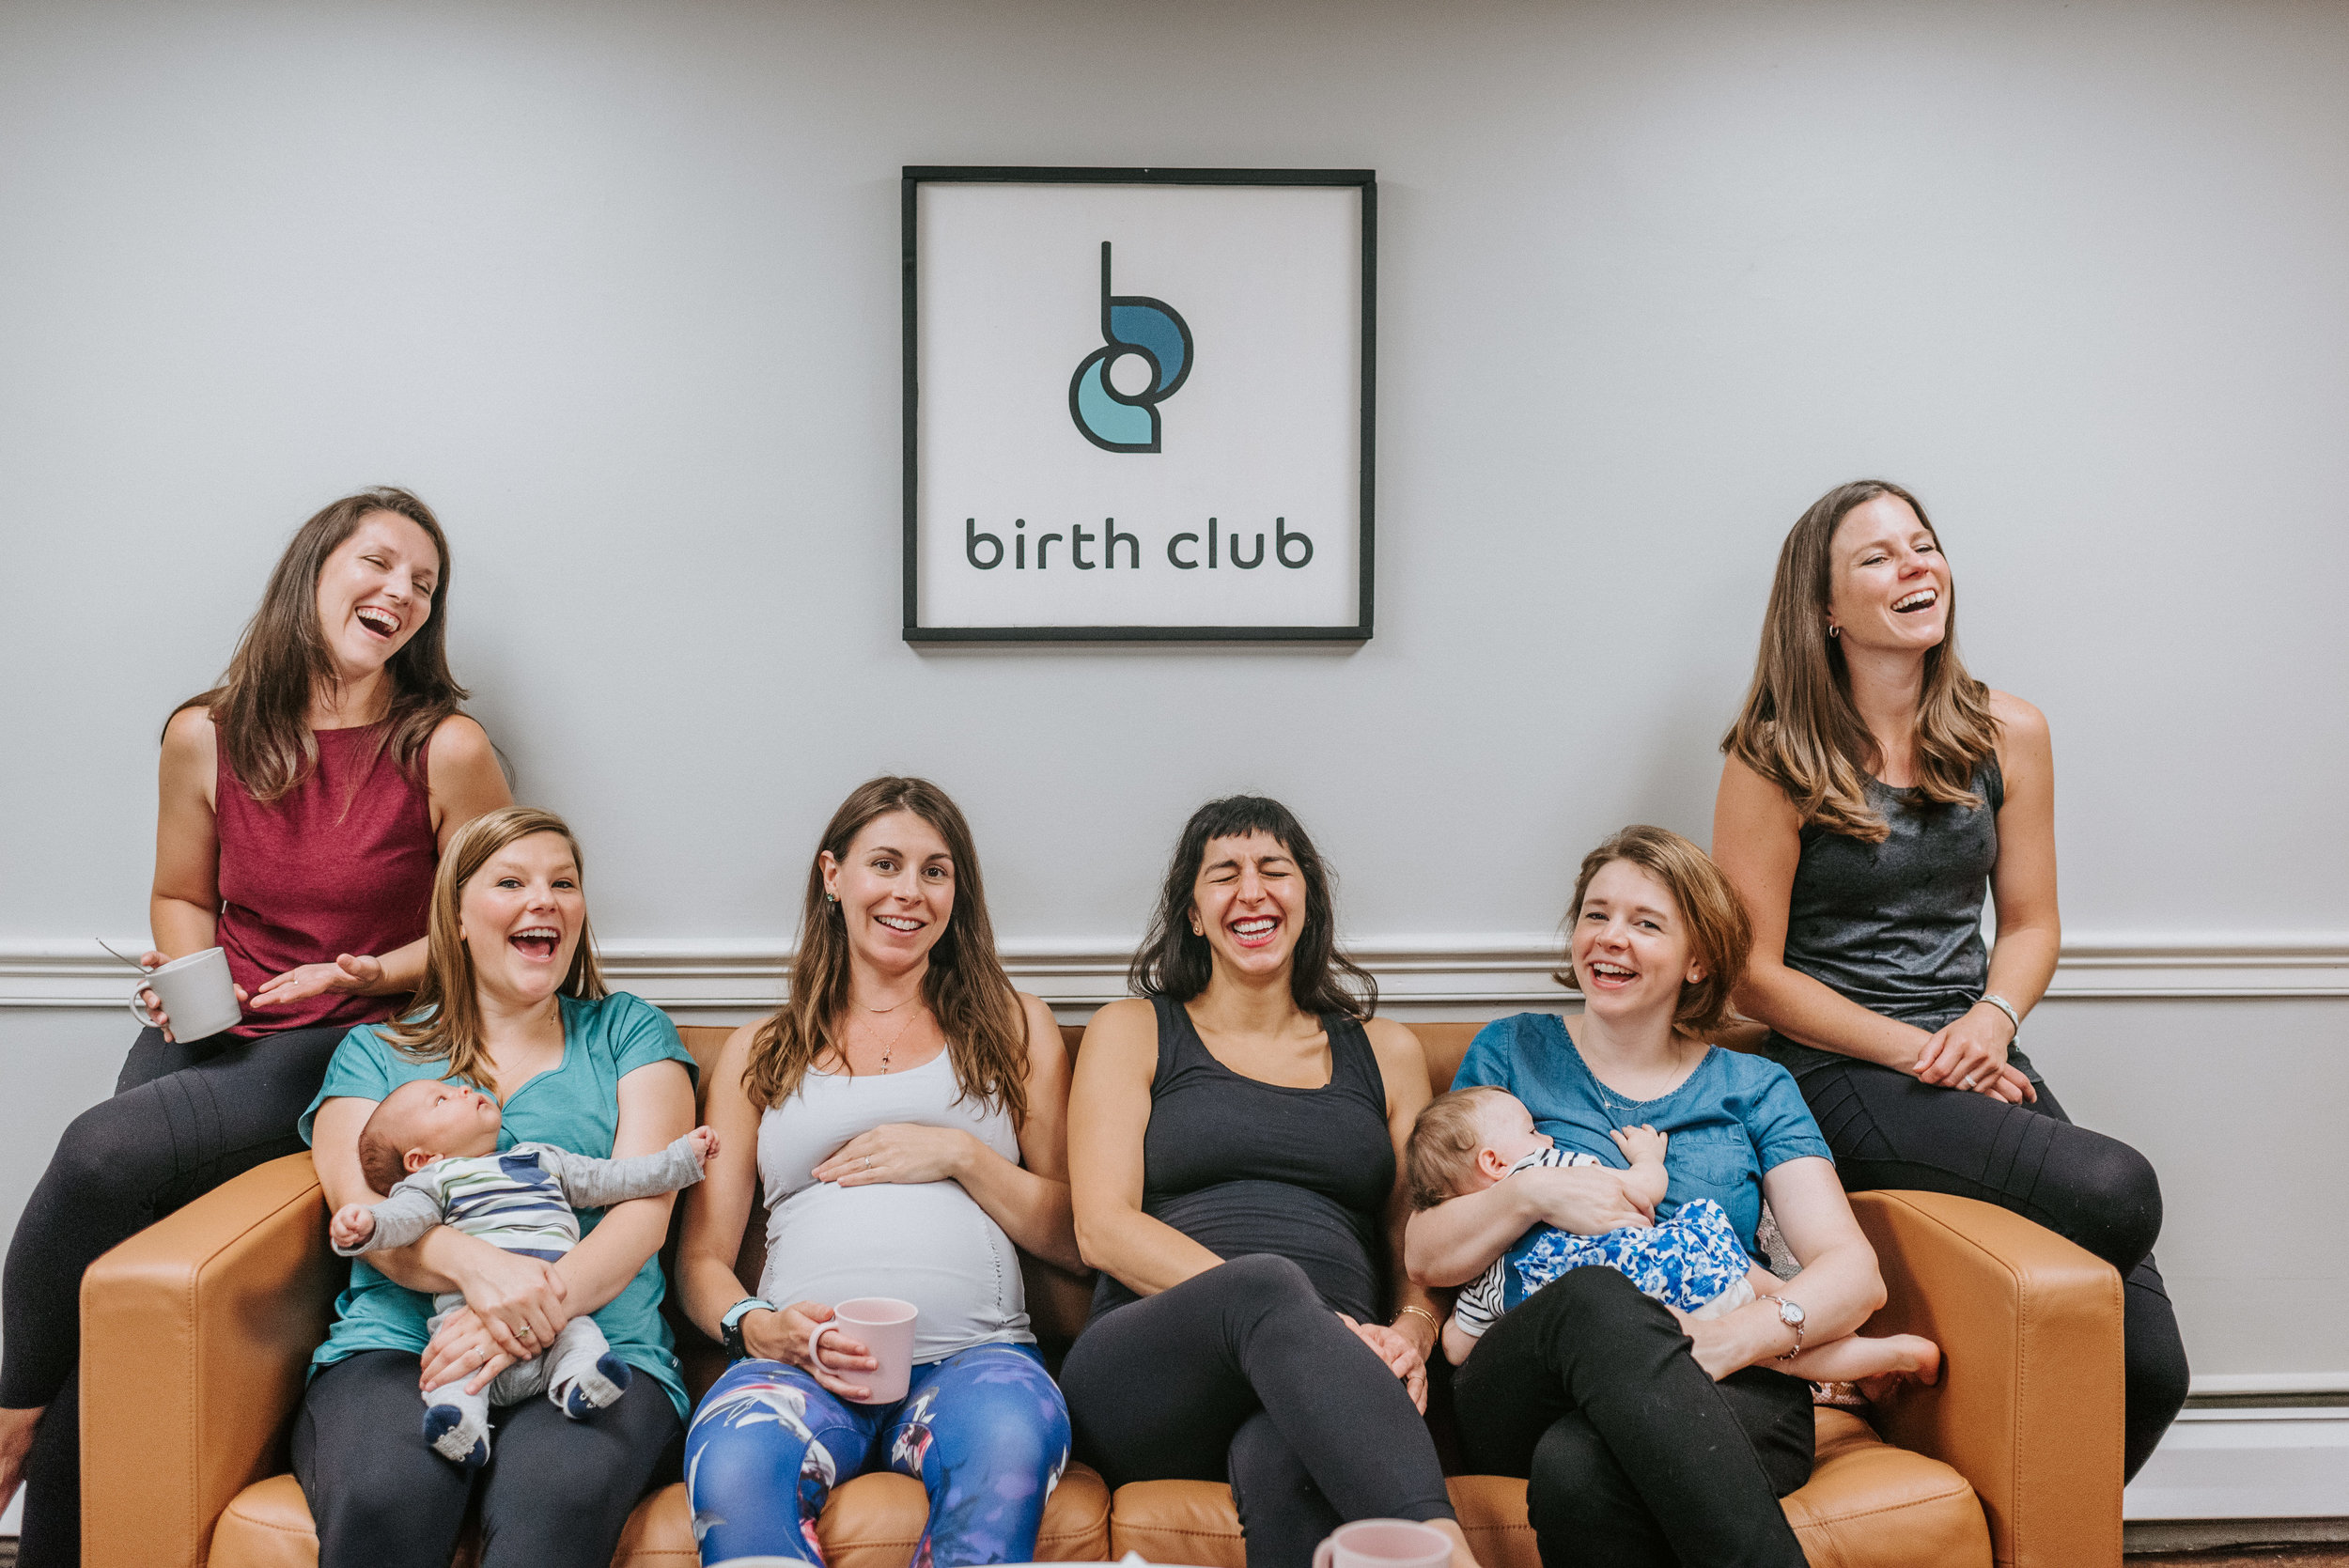 Welcome, Mama! - Our goal at Birth Club is to give you access and exposure to the plethora of topics and information relevant to moms at all stages. In addition to our sweet all-mama-all-the-time yoga schedule, we offer a ton of workshops, series, free talks, and networking events (meet Doulas!). We know each of our instructors personally, believe in what they have to say, and are thrilled to offer their courses and events to you in our space. Register for it all below - can't wait to see you there!